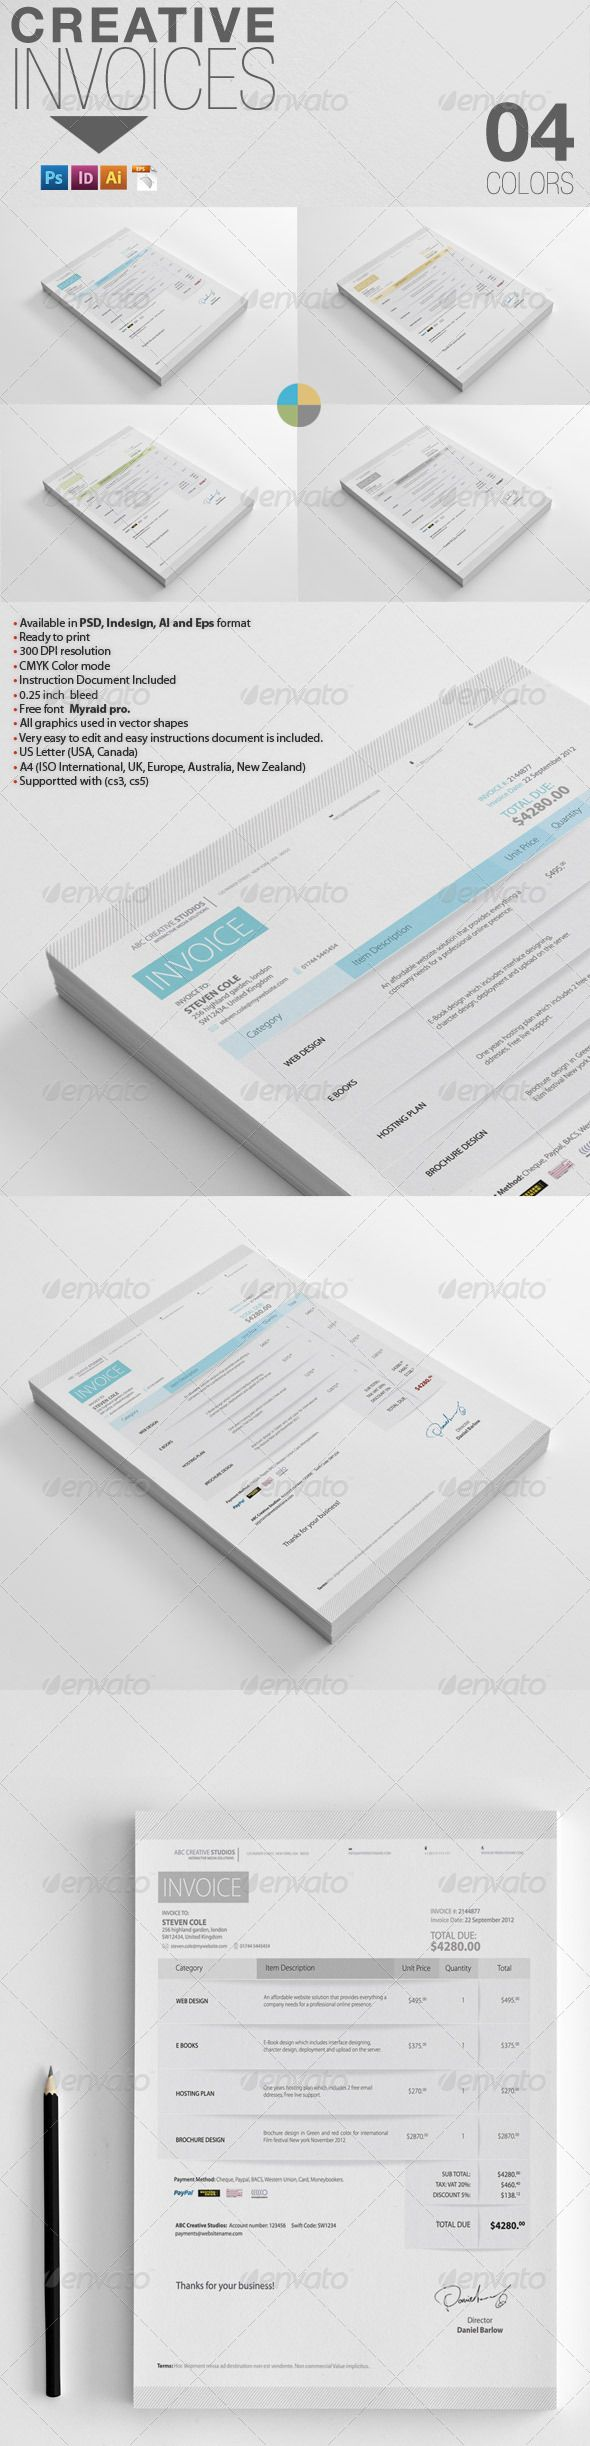 7 best Corporate Identity images on Pinterest | Corporate identity ...